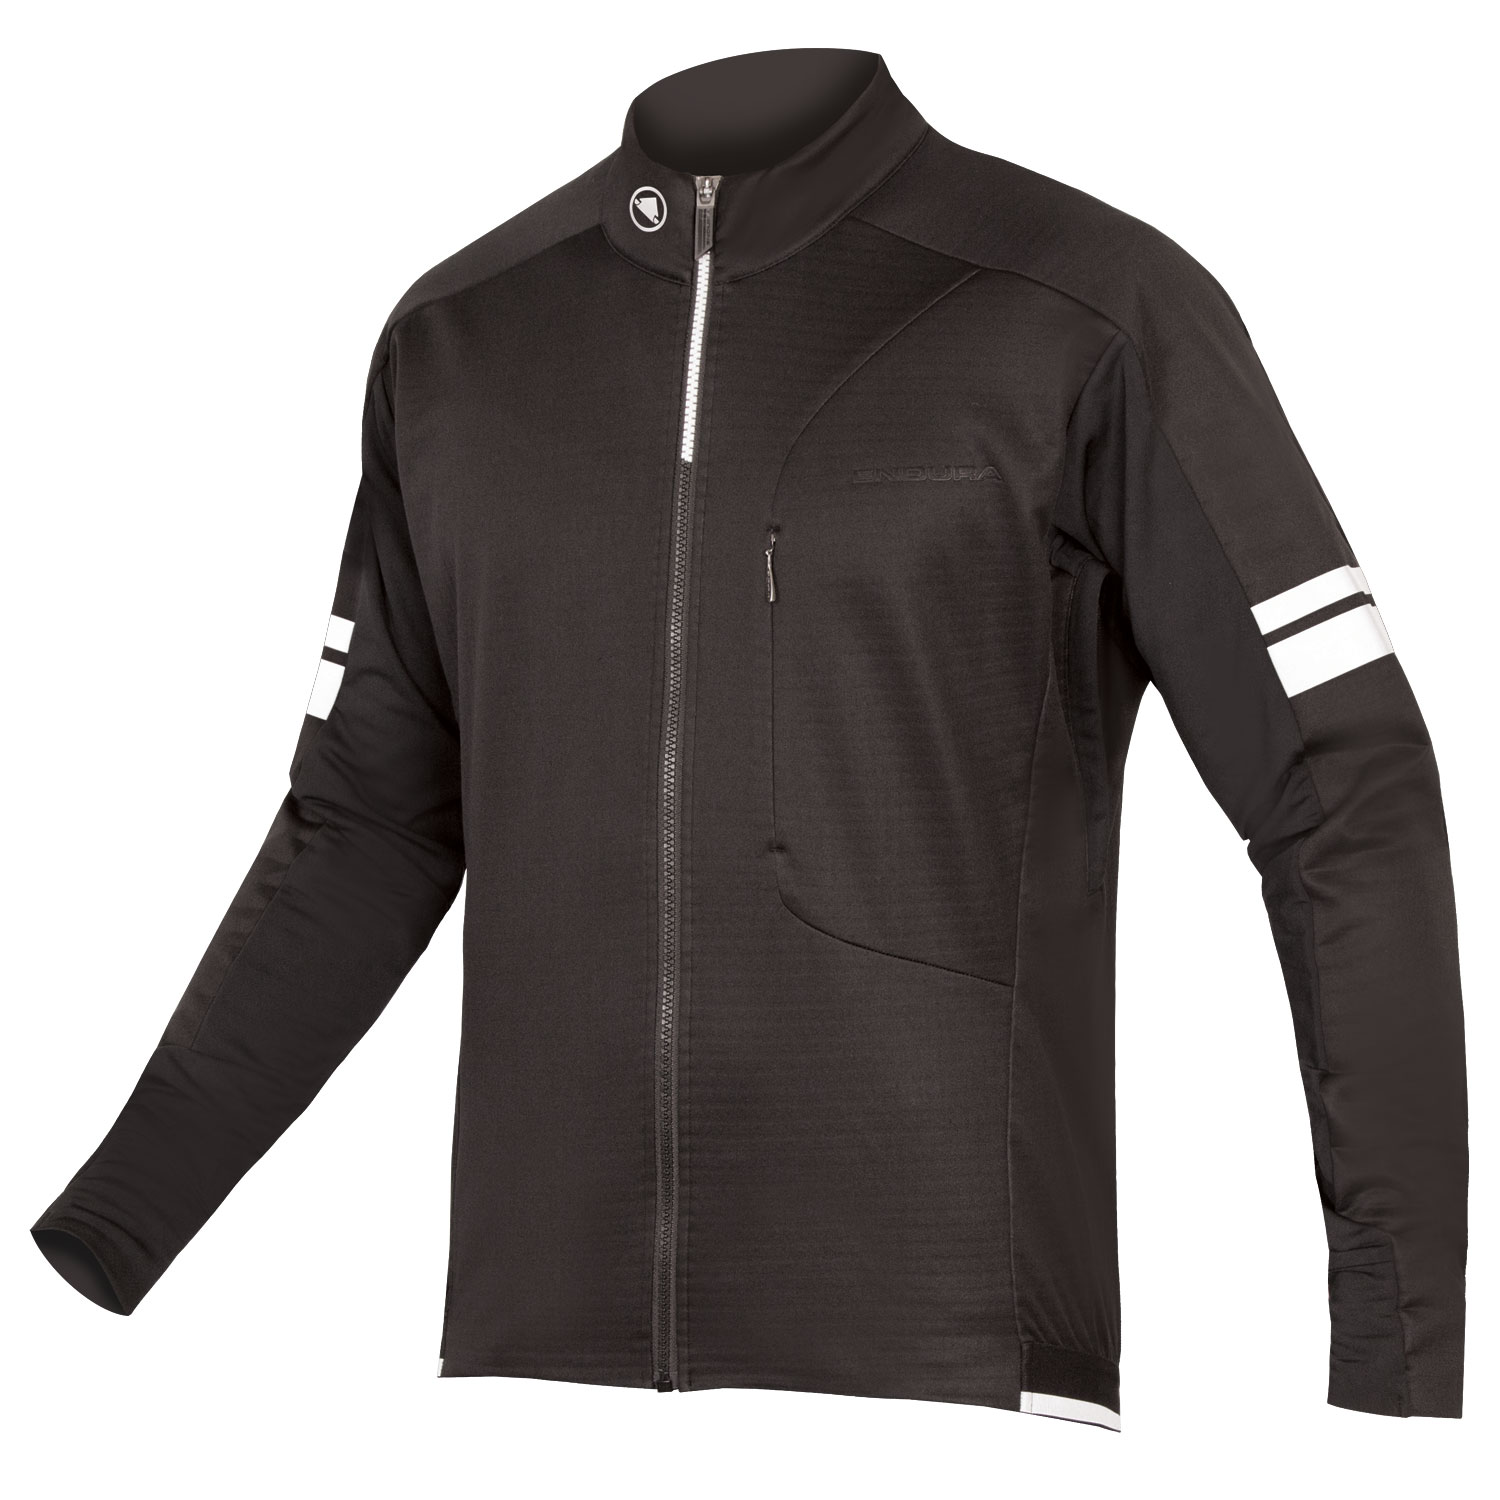 Endura Windchill (Large) Windproof Winter Jacket